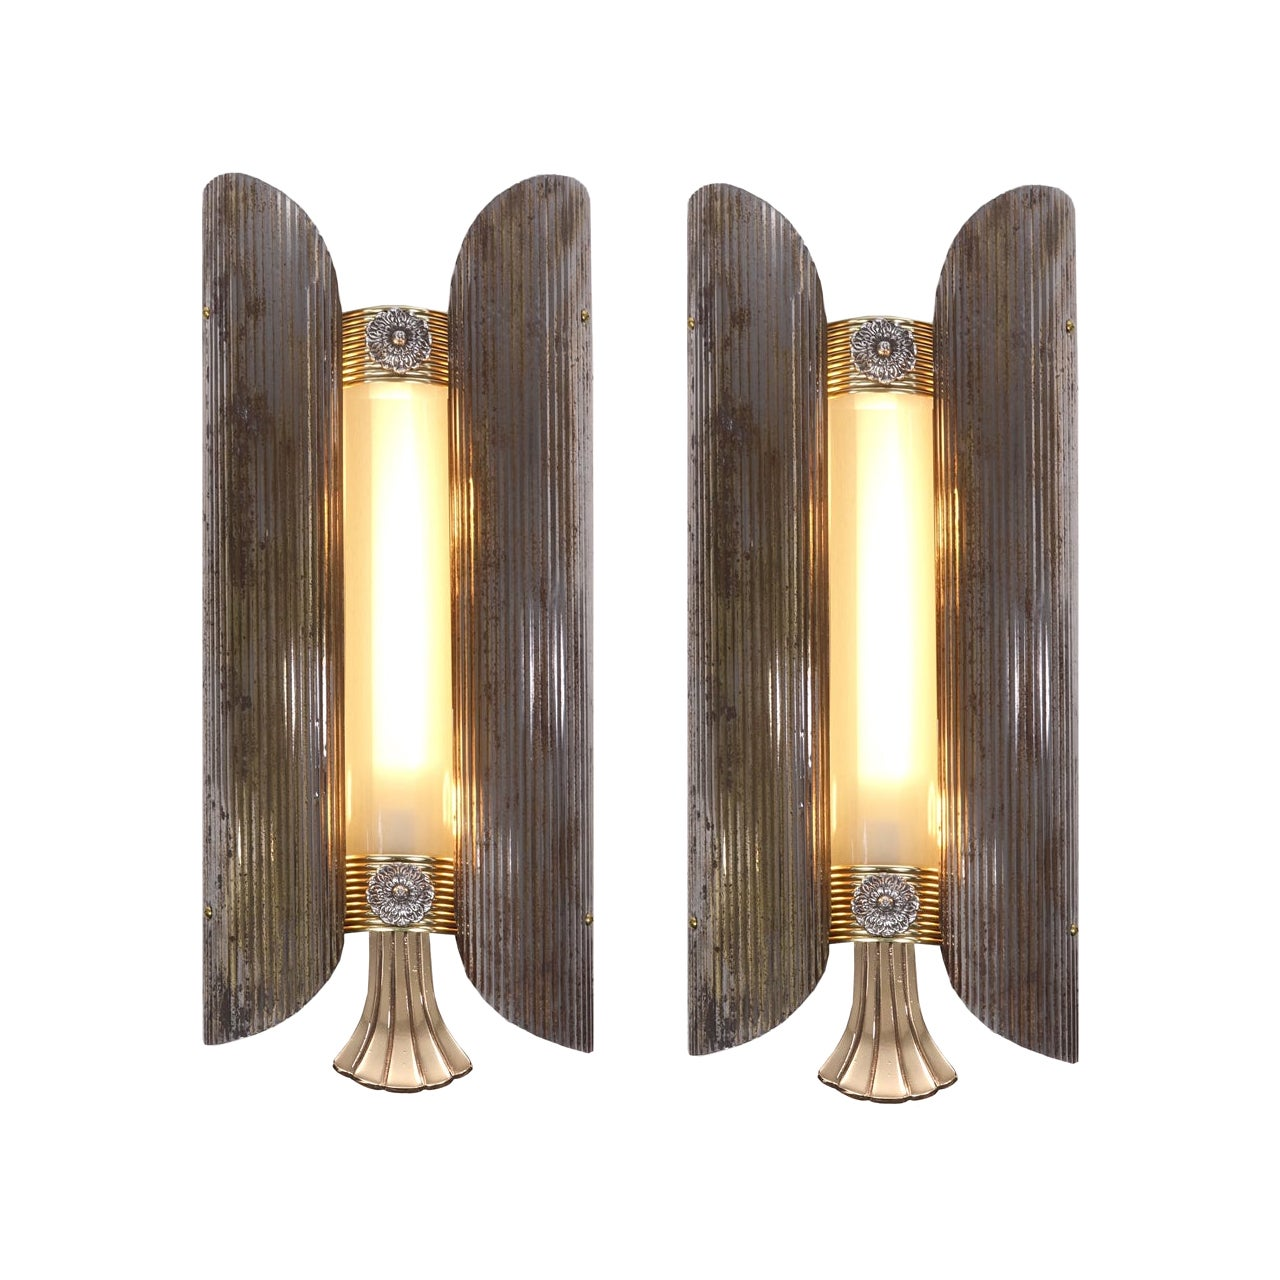 Pair of Art Deco Theater Sconces